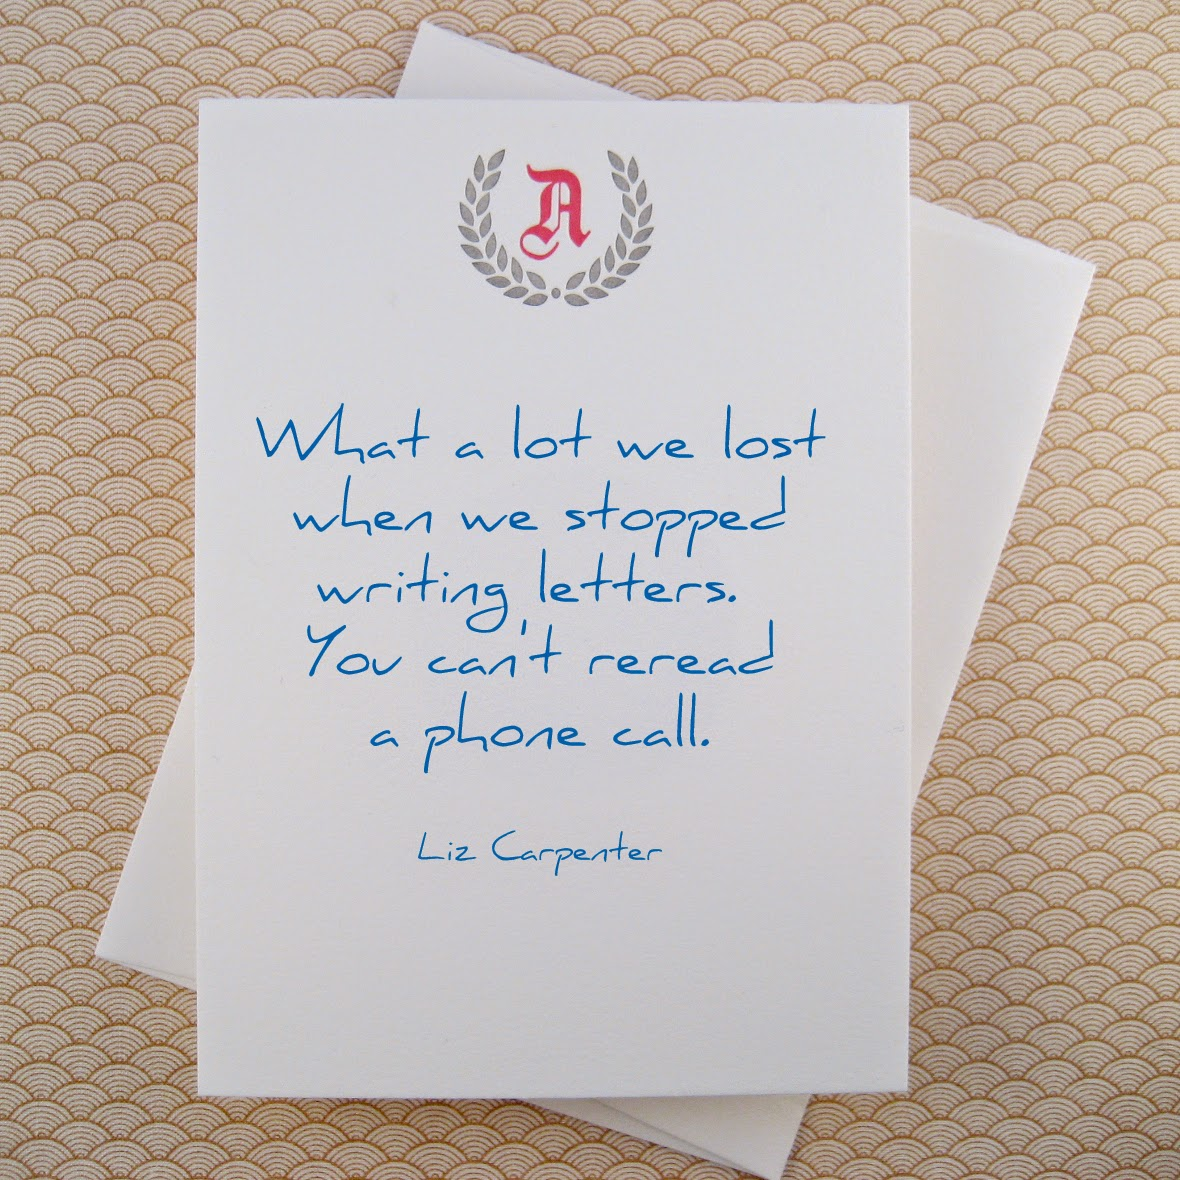 What a lot we lost  when we stopped  writing letters.  You can't reread  a phone call.  Liz Carpenter